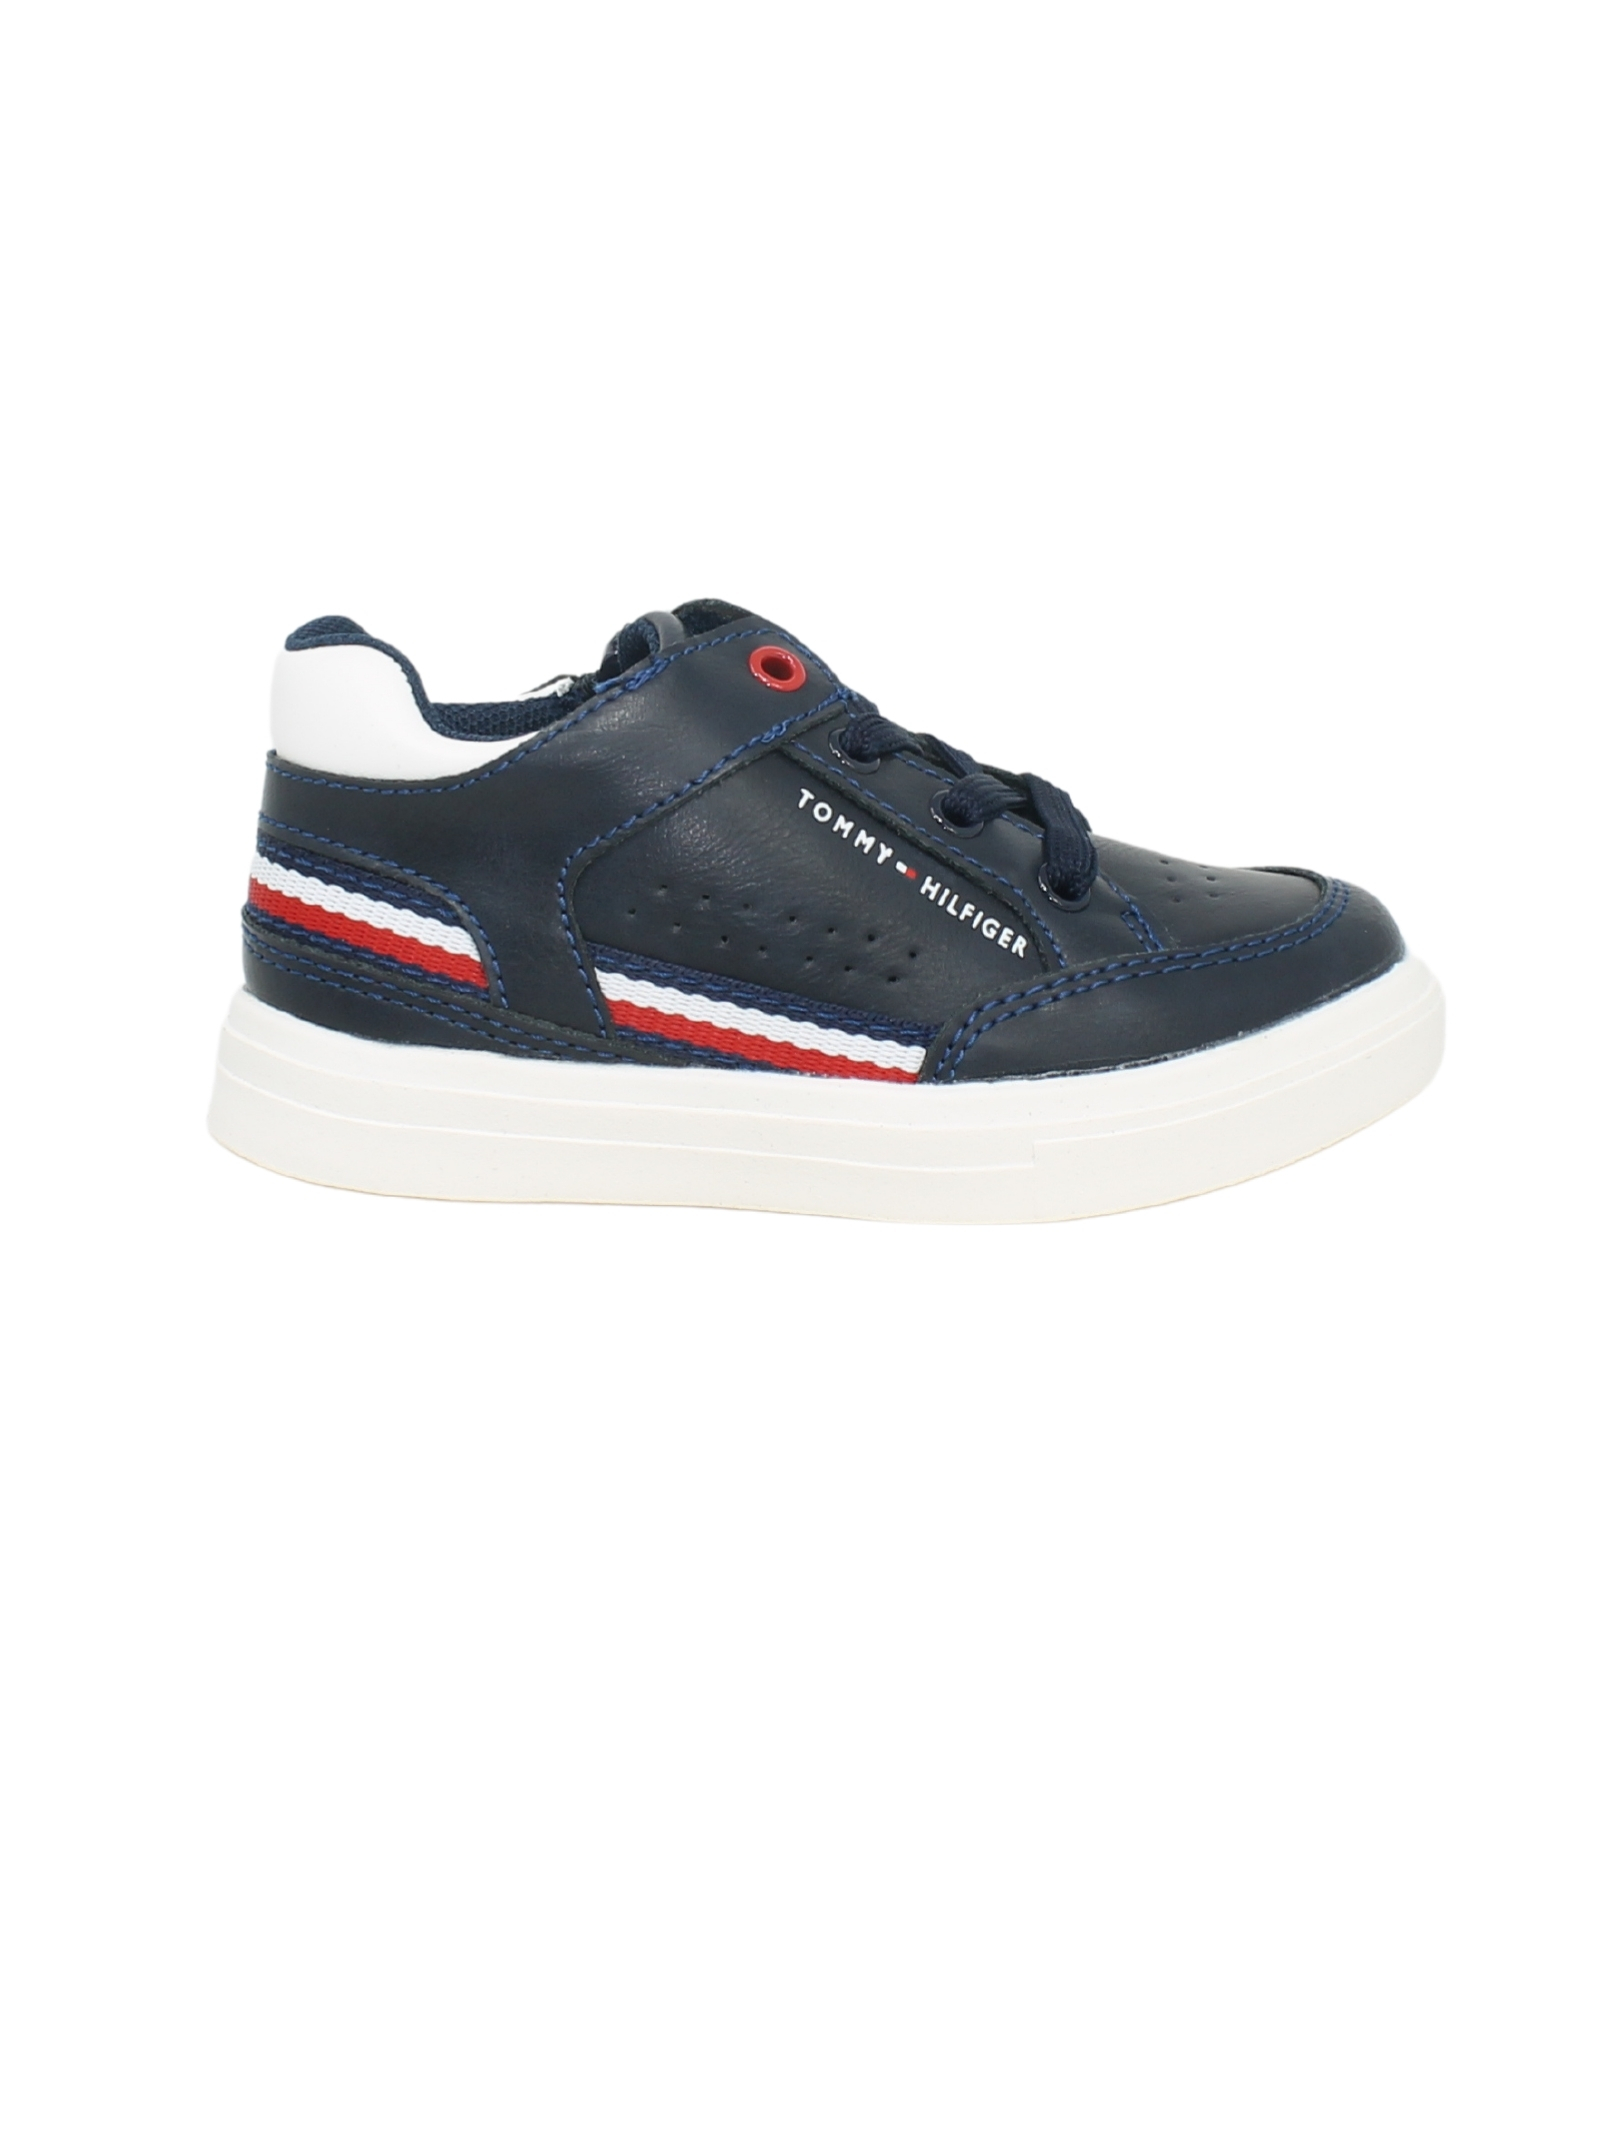 Sneakers Iconica Bambino TOMMY HILFIGER KIDS | Sneakers | T1B4320430621X007BLU